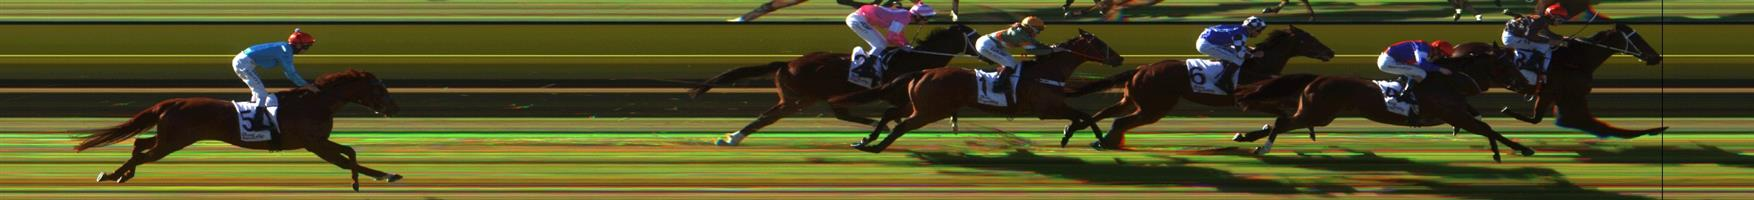 WARRACKNABEAL Race 7 No. 4 Buena Veloz  Result : 2nd at SP $4.00. After settling at the tail of the field, was fast finishing as the widest runner but just ran out of ground to run down the leader. Outcome -1.50 Units.